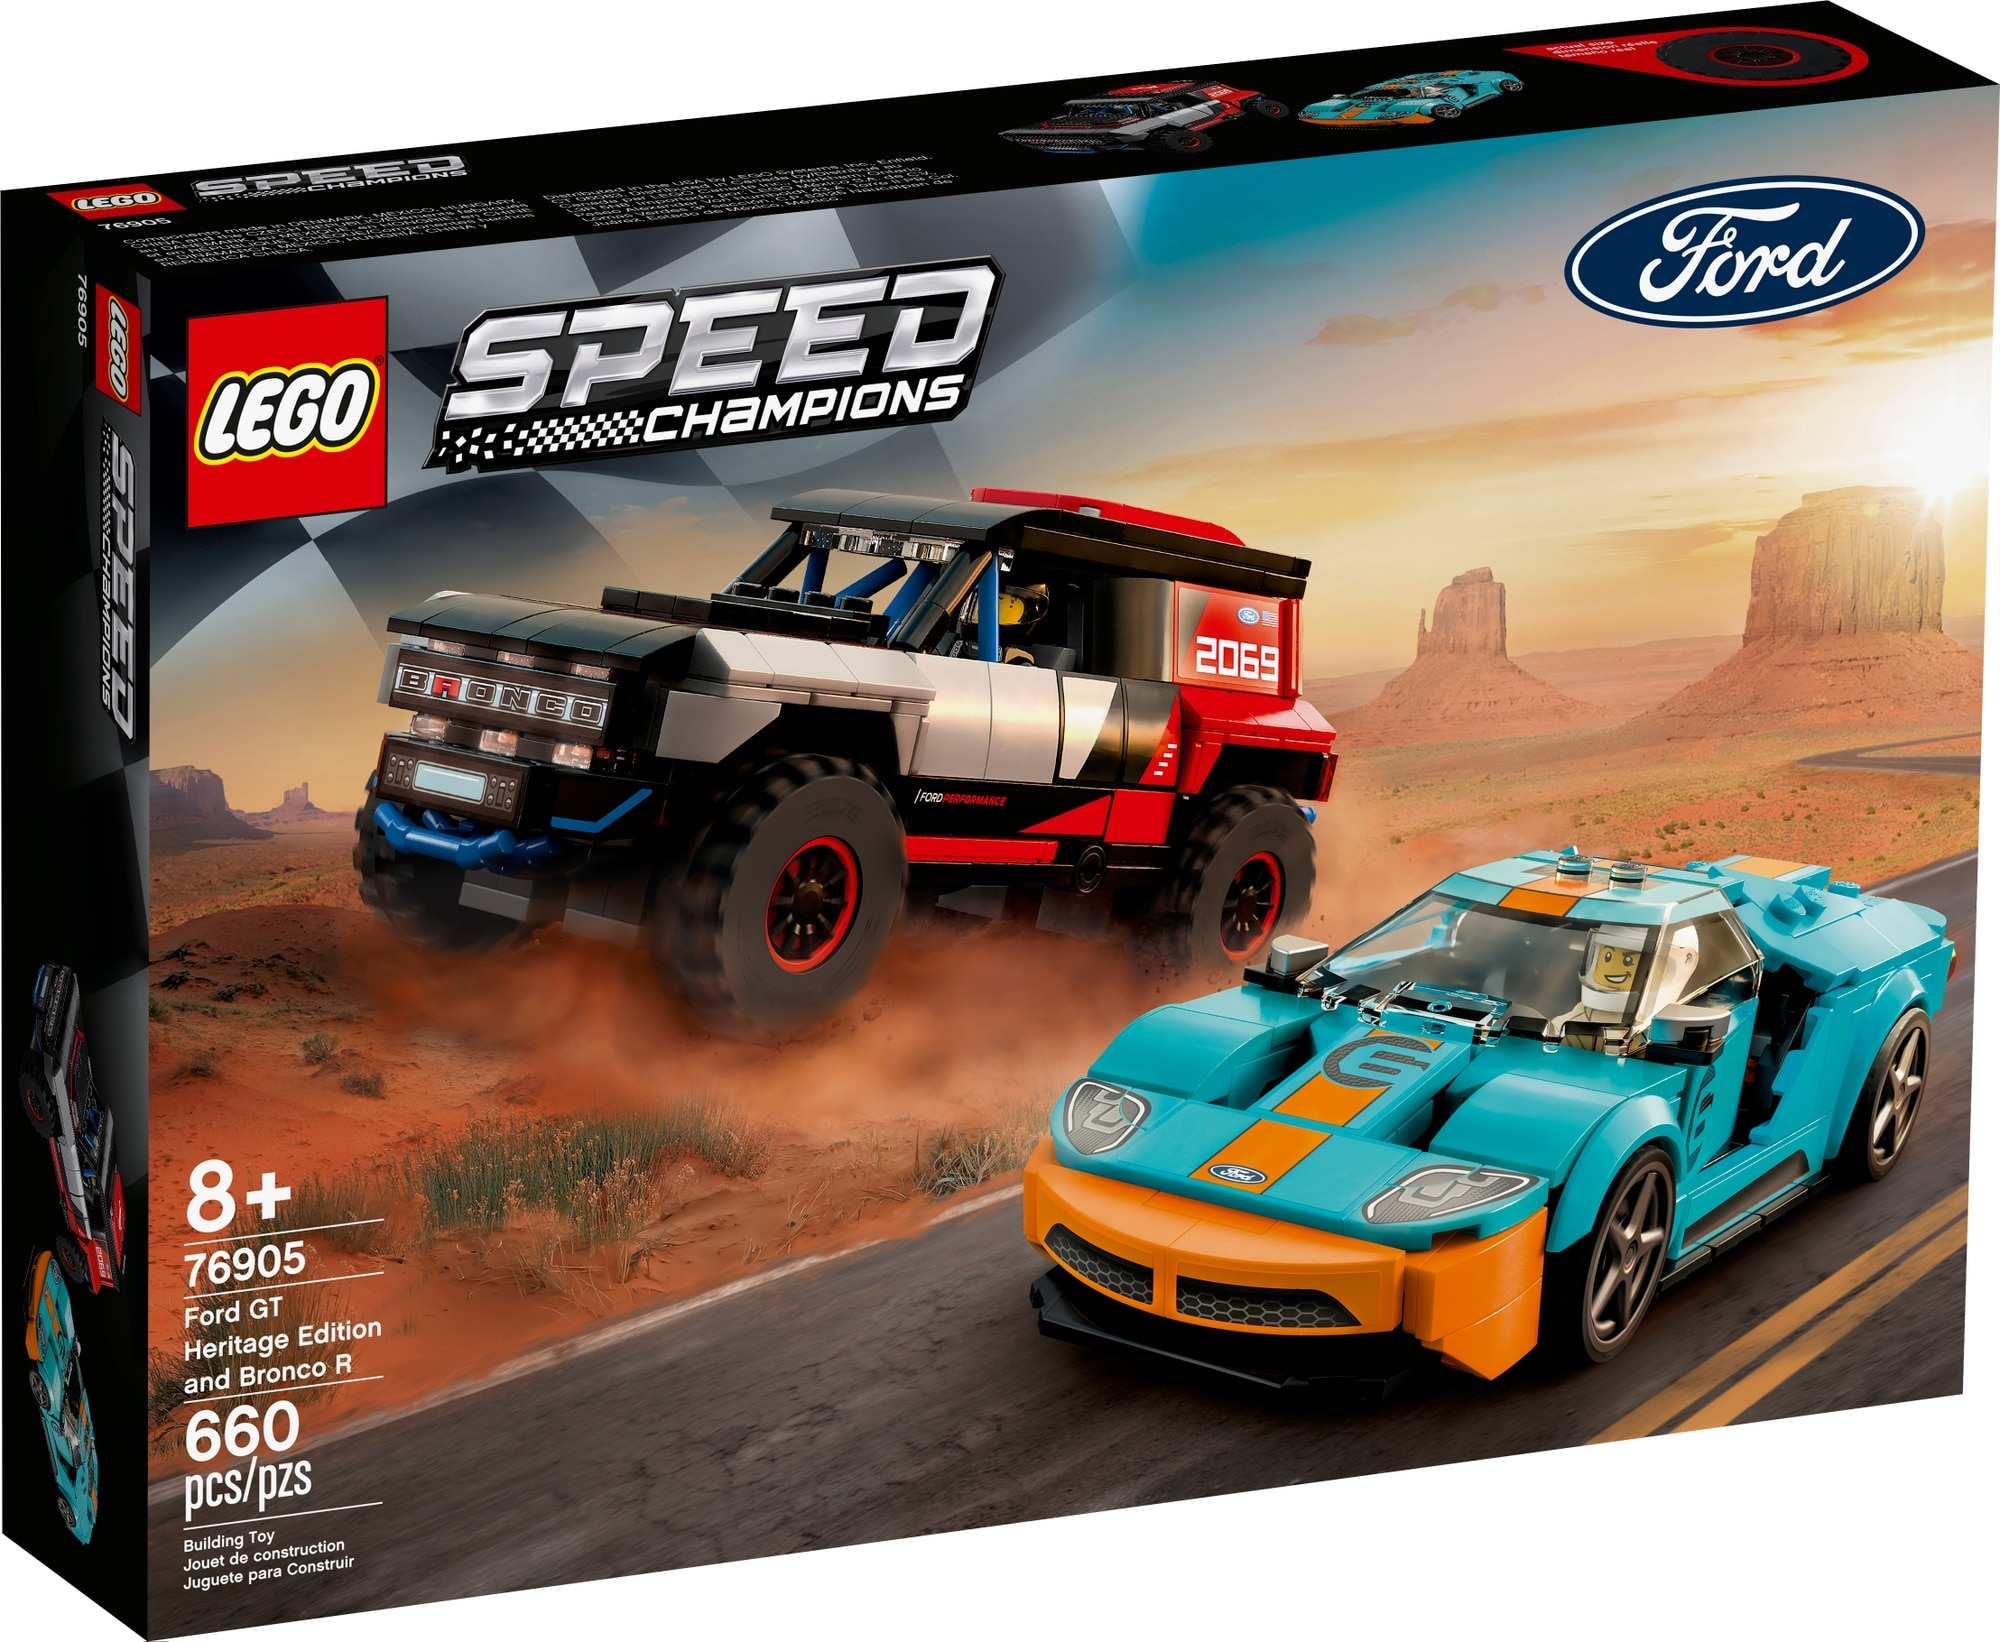 LEGO Speed Champions 76905 Ford Gt Heritage Edition Und Bronco R 2